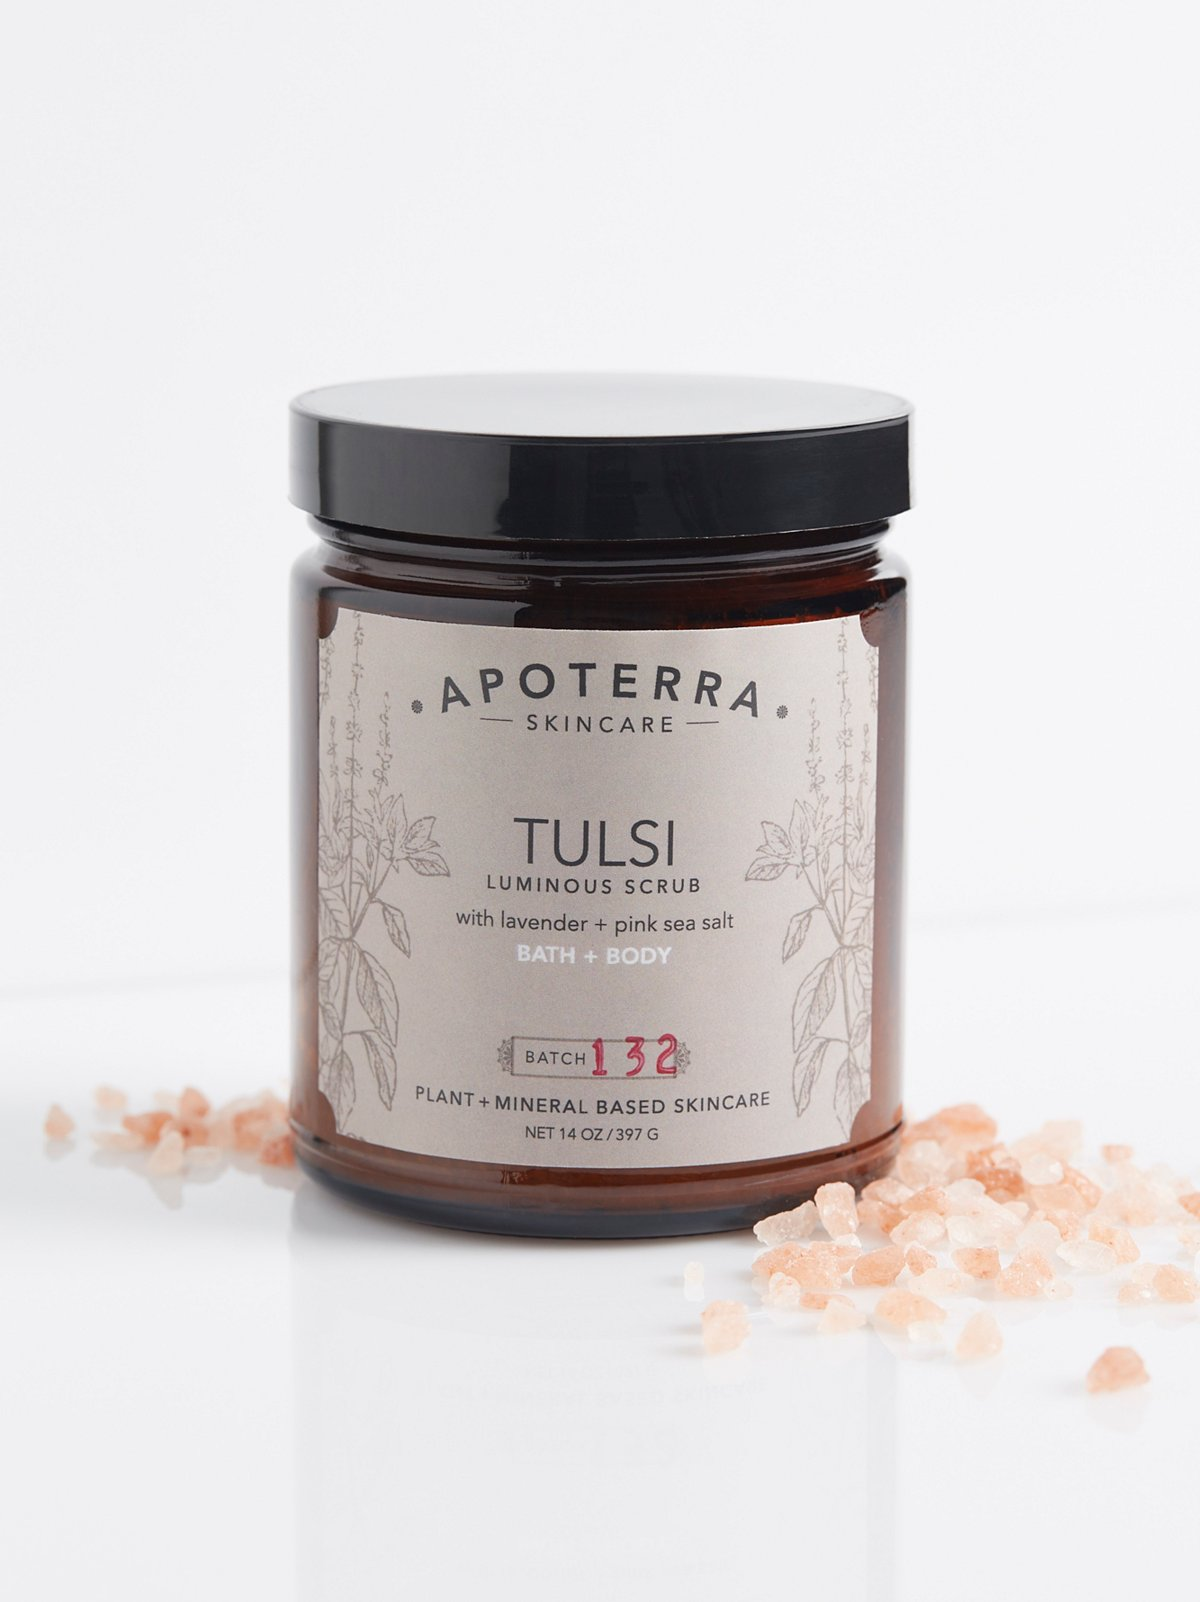 Tulsi Luminous Scrub